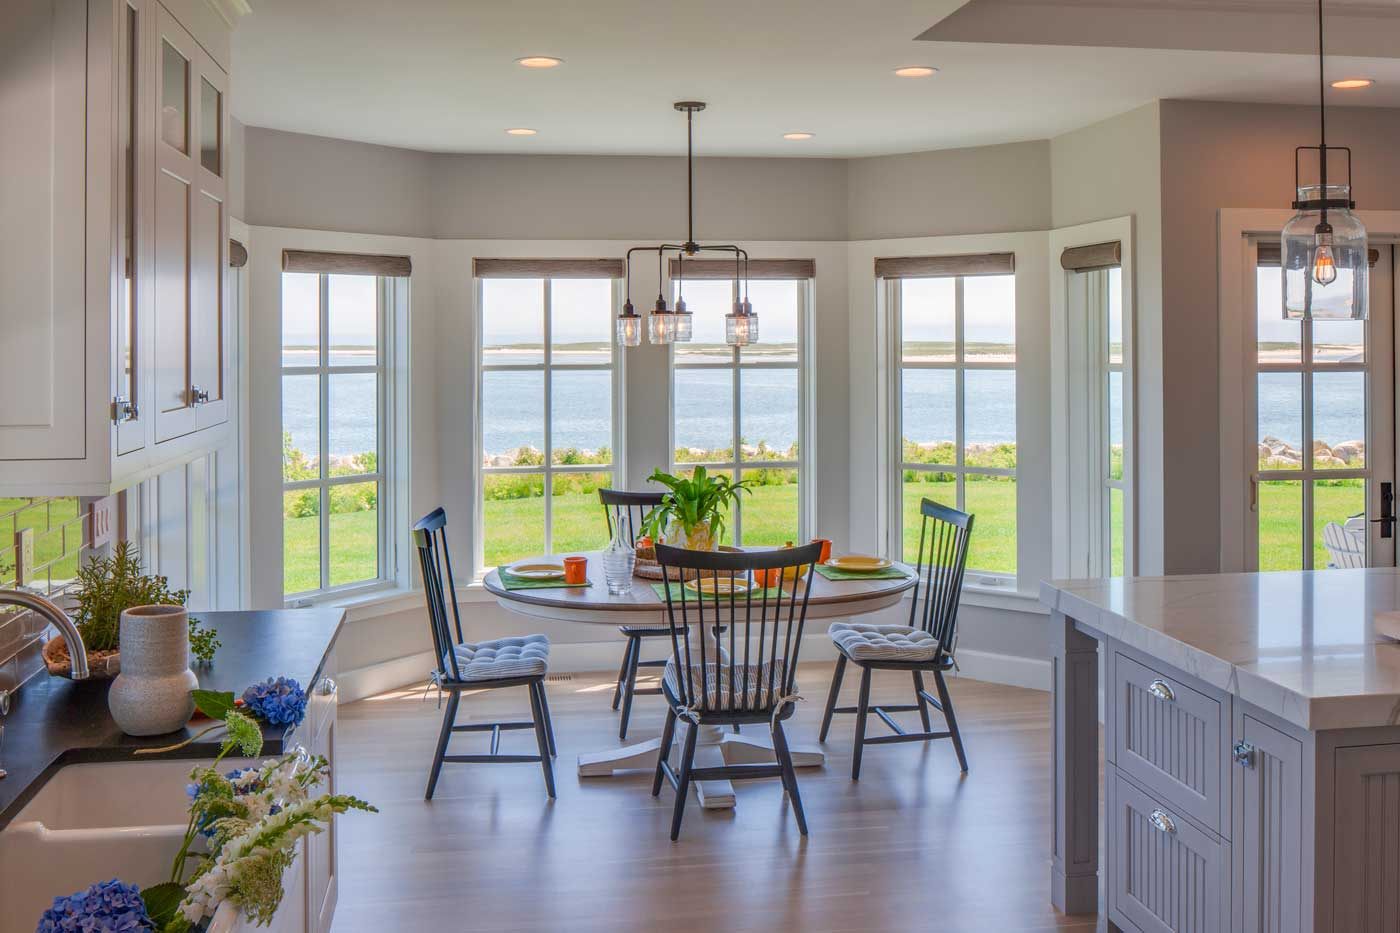 Dining area with big window and view of the ocean